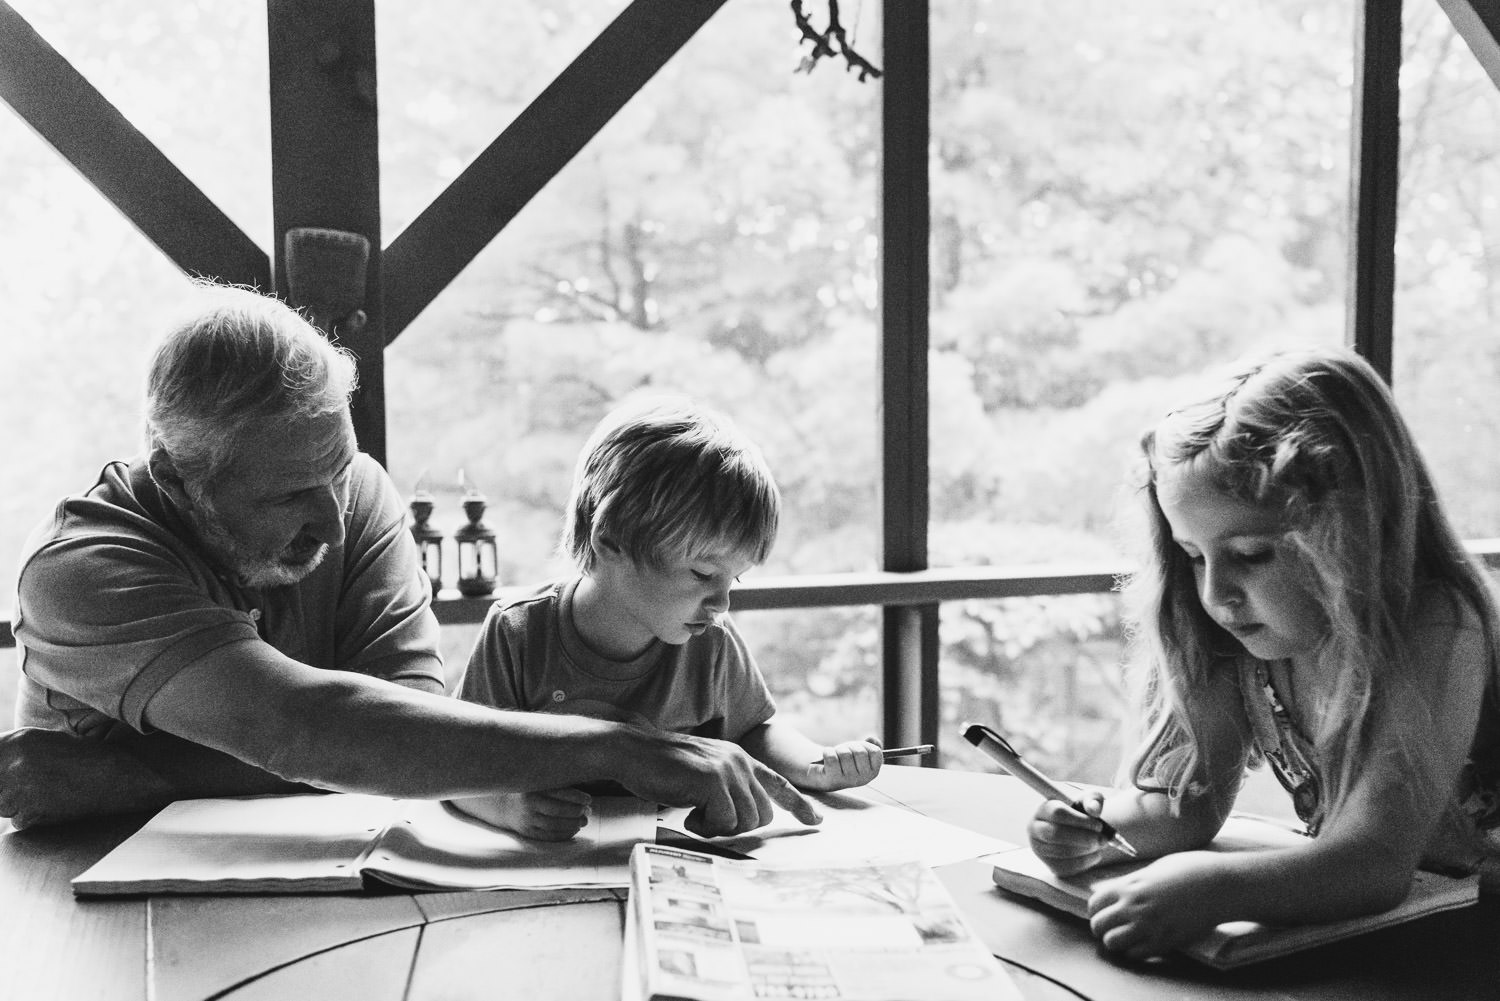 A grandfather works on homework with his grandkids on a screened-in porch.